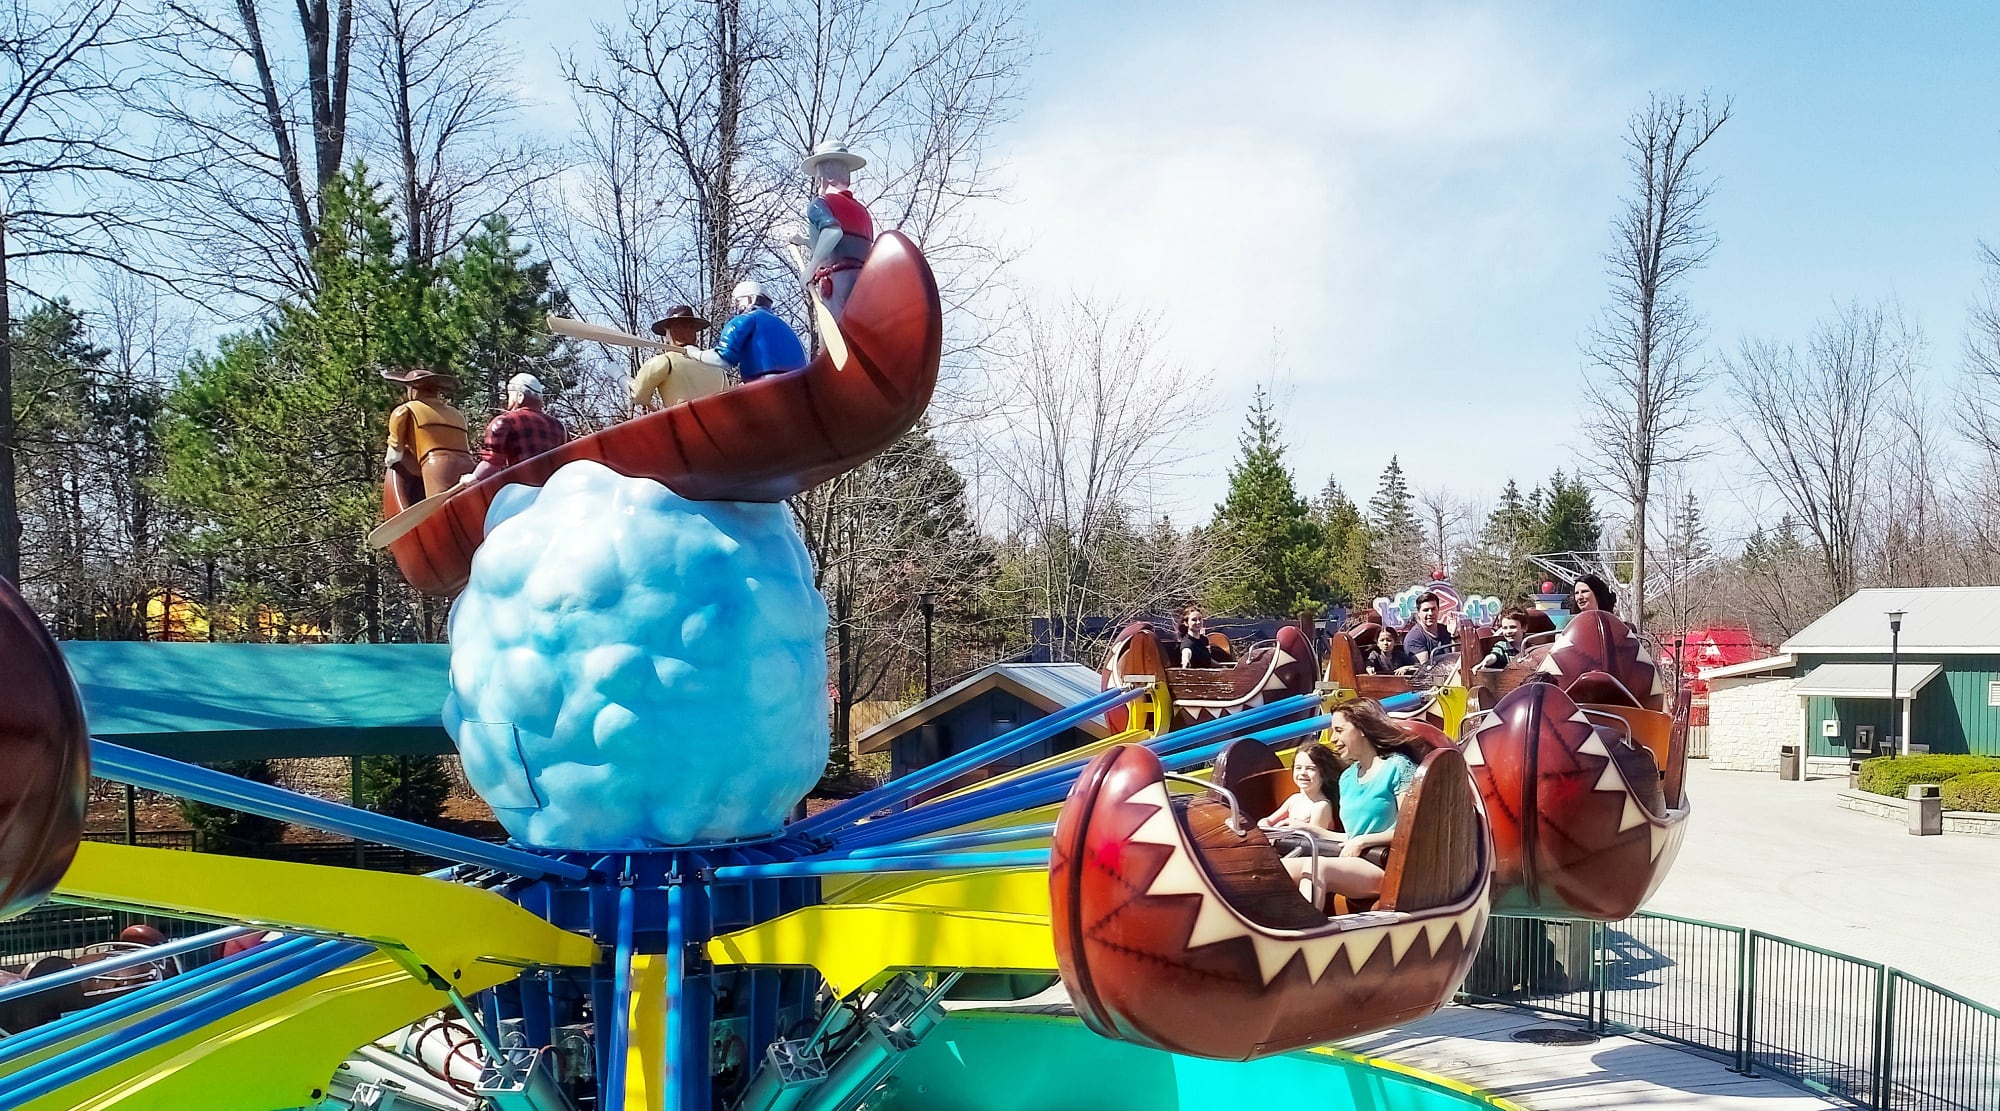 Flying Canoes is new to the Canada's Wonderland for 2018